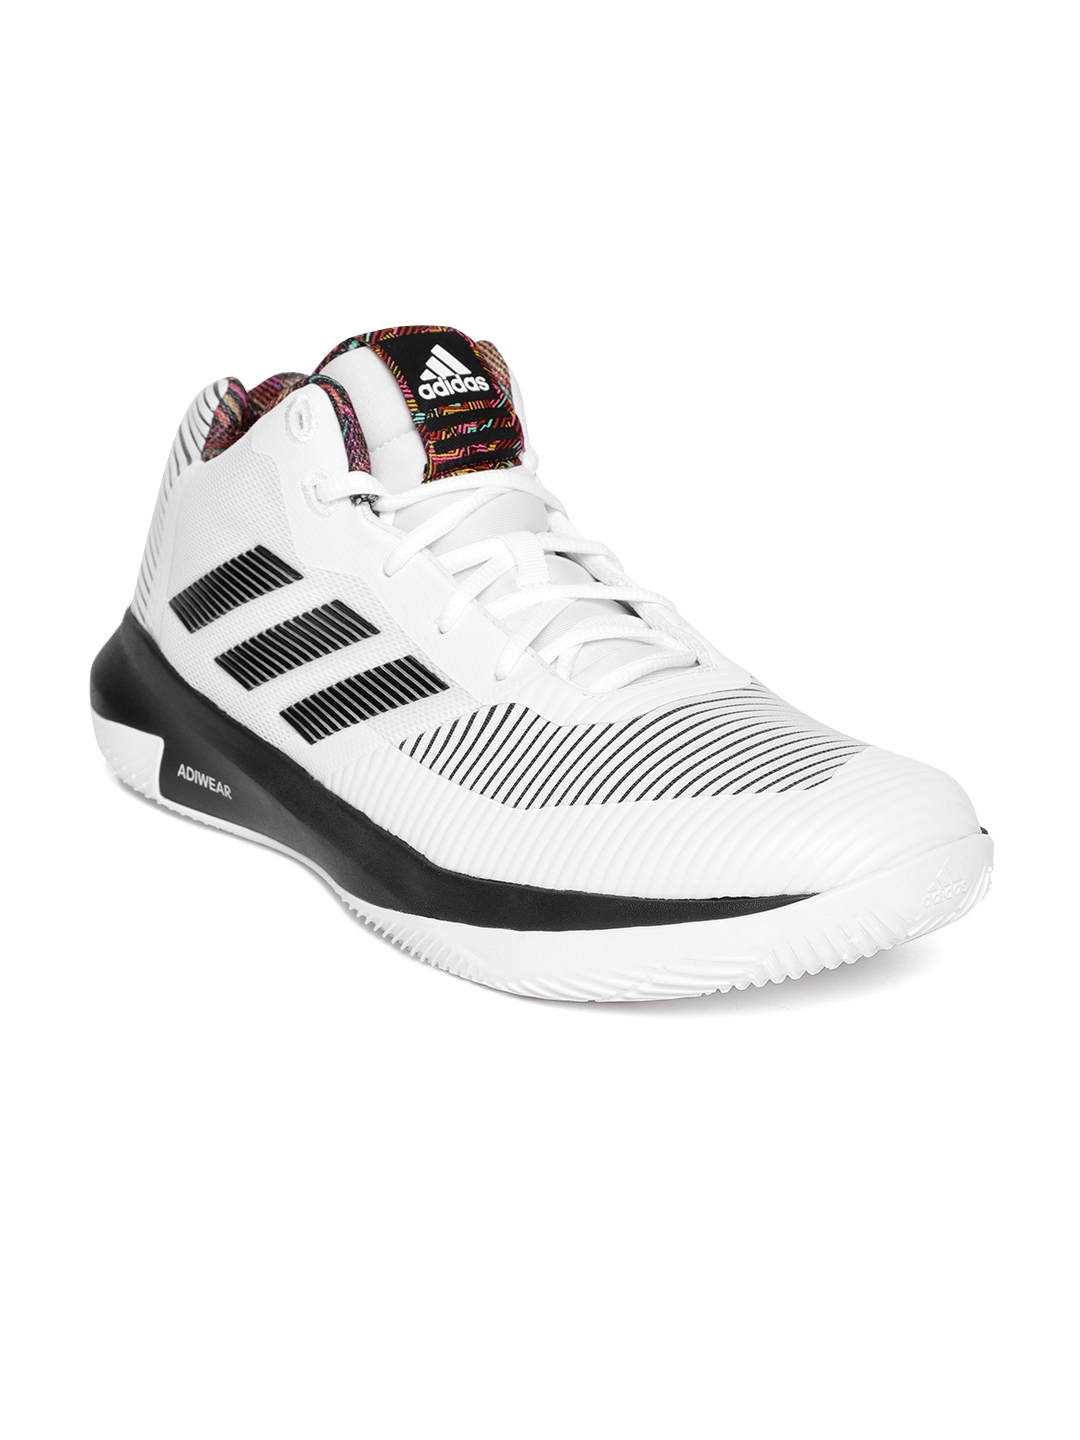 55cf63a67c5a Buy ADIDAS Men White   Black D Rose Lethality Basketball Shoes ...